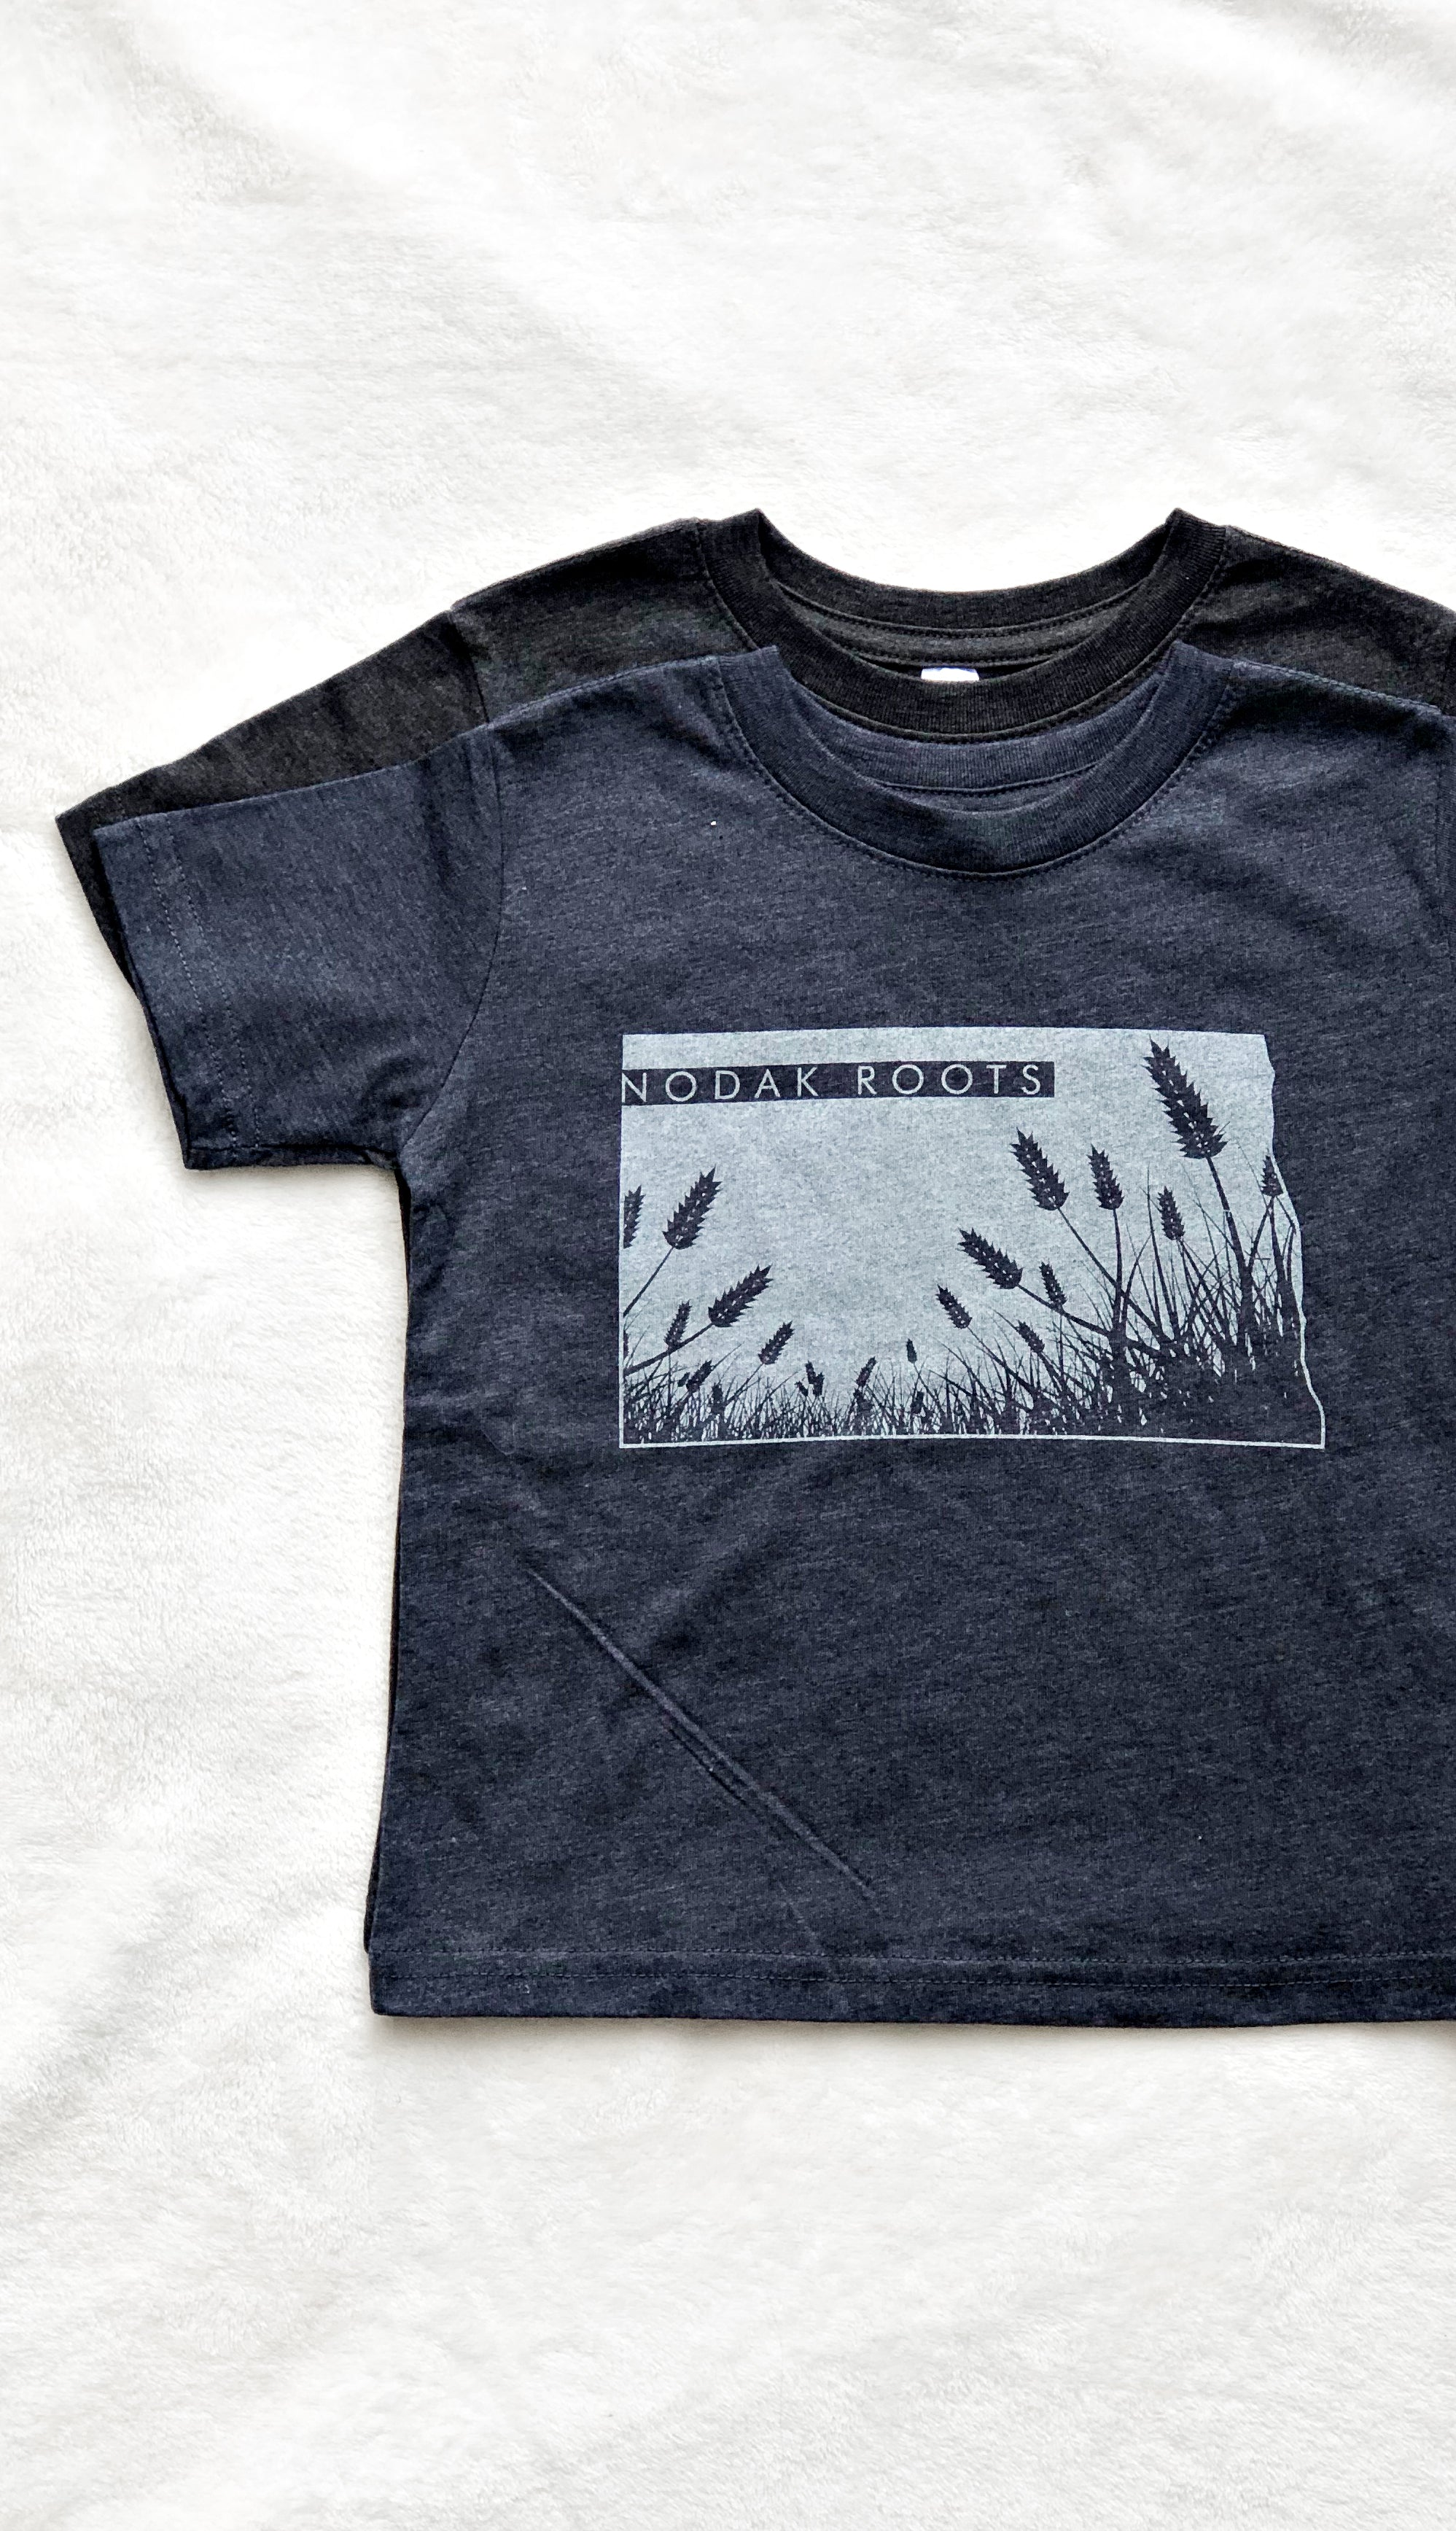 Kids Nodak Roots Tee- Navy